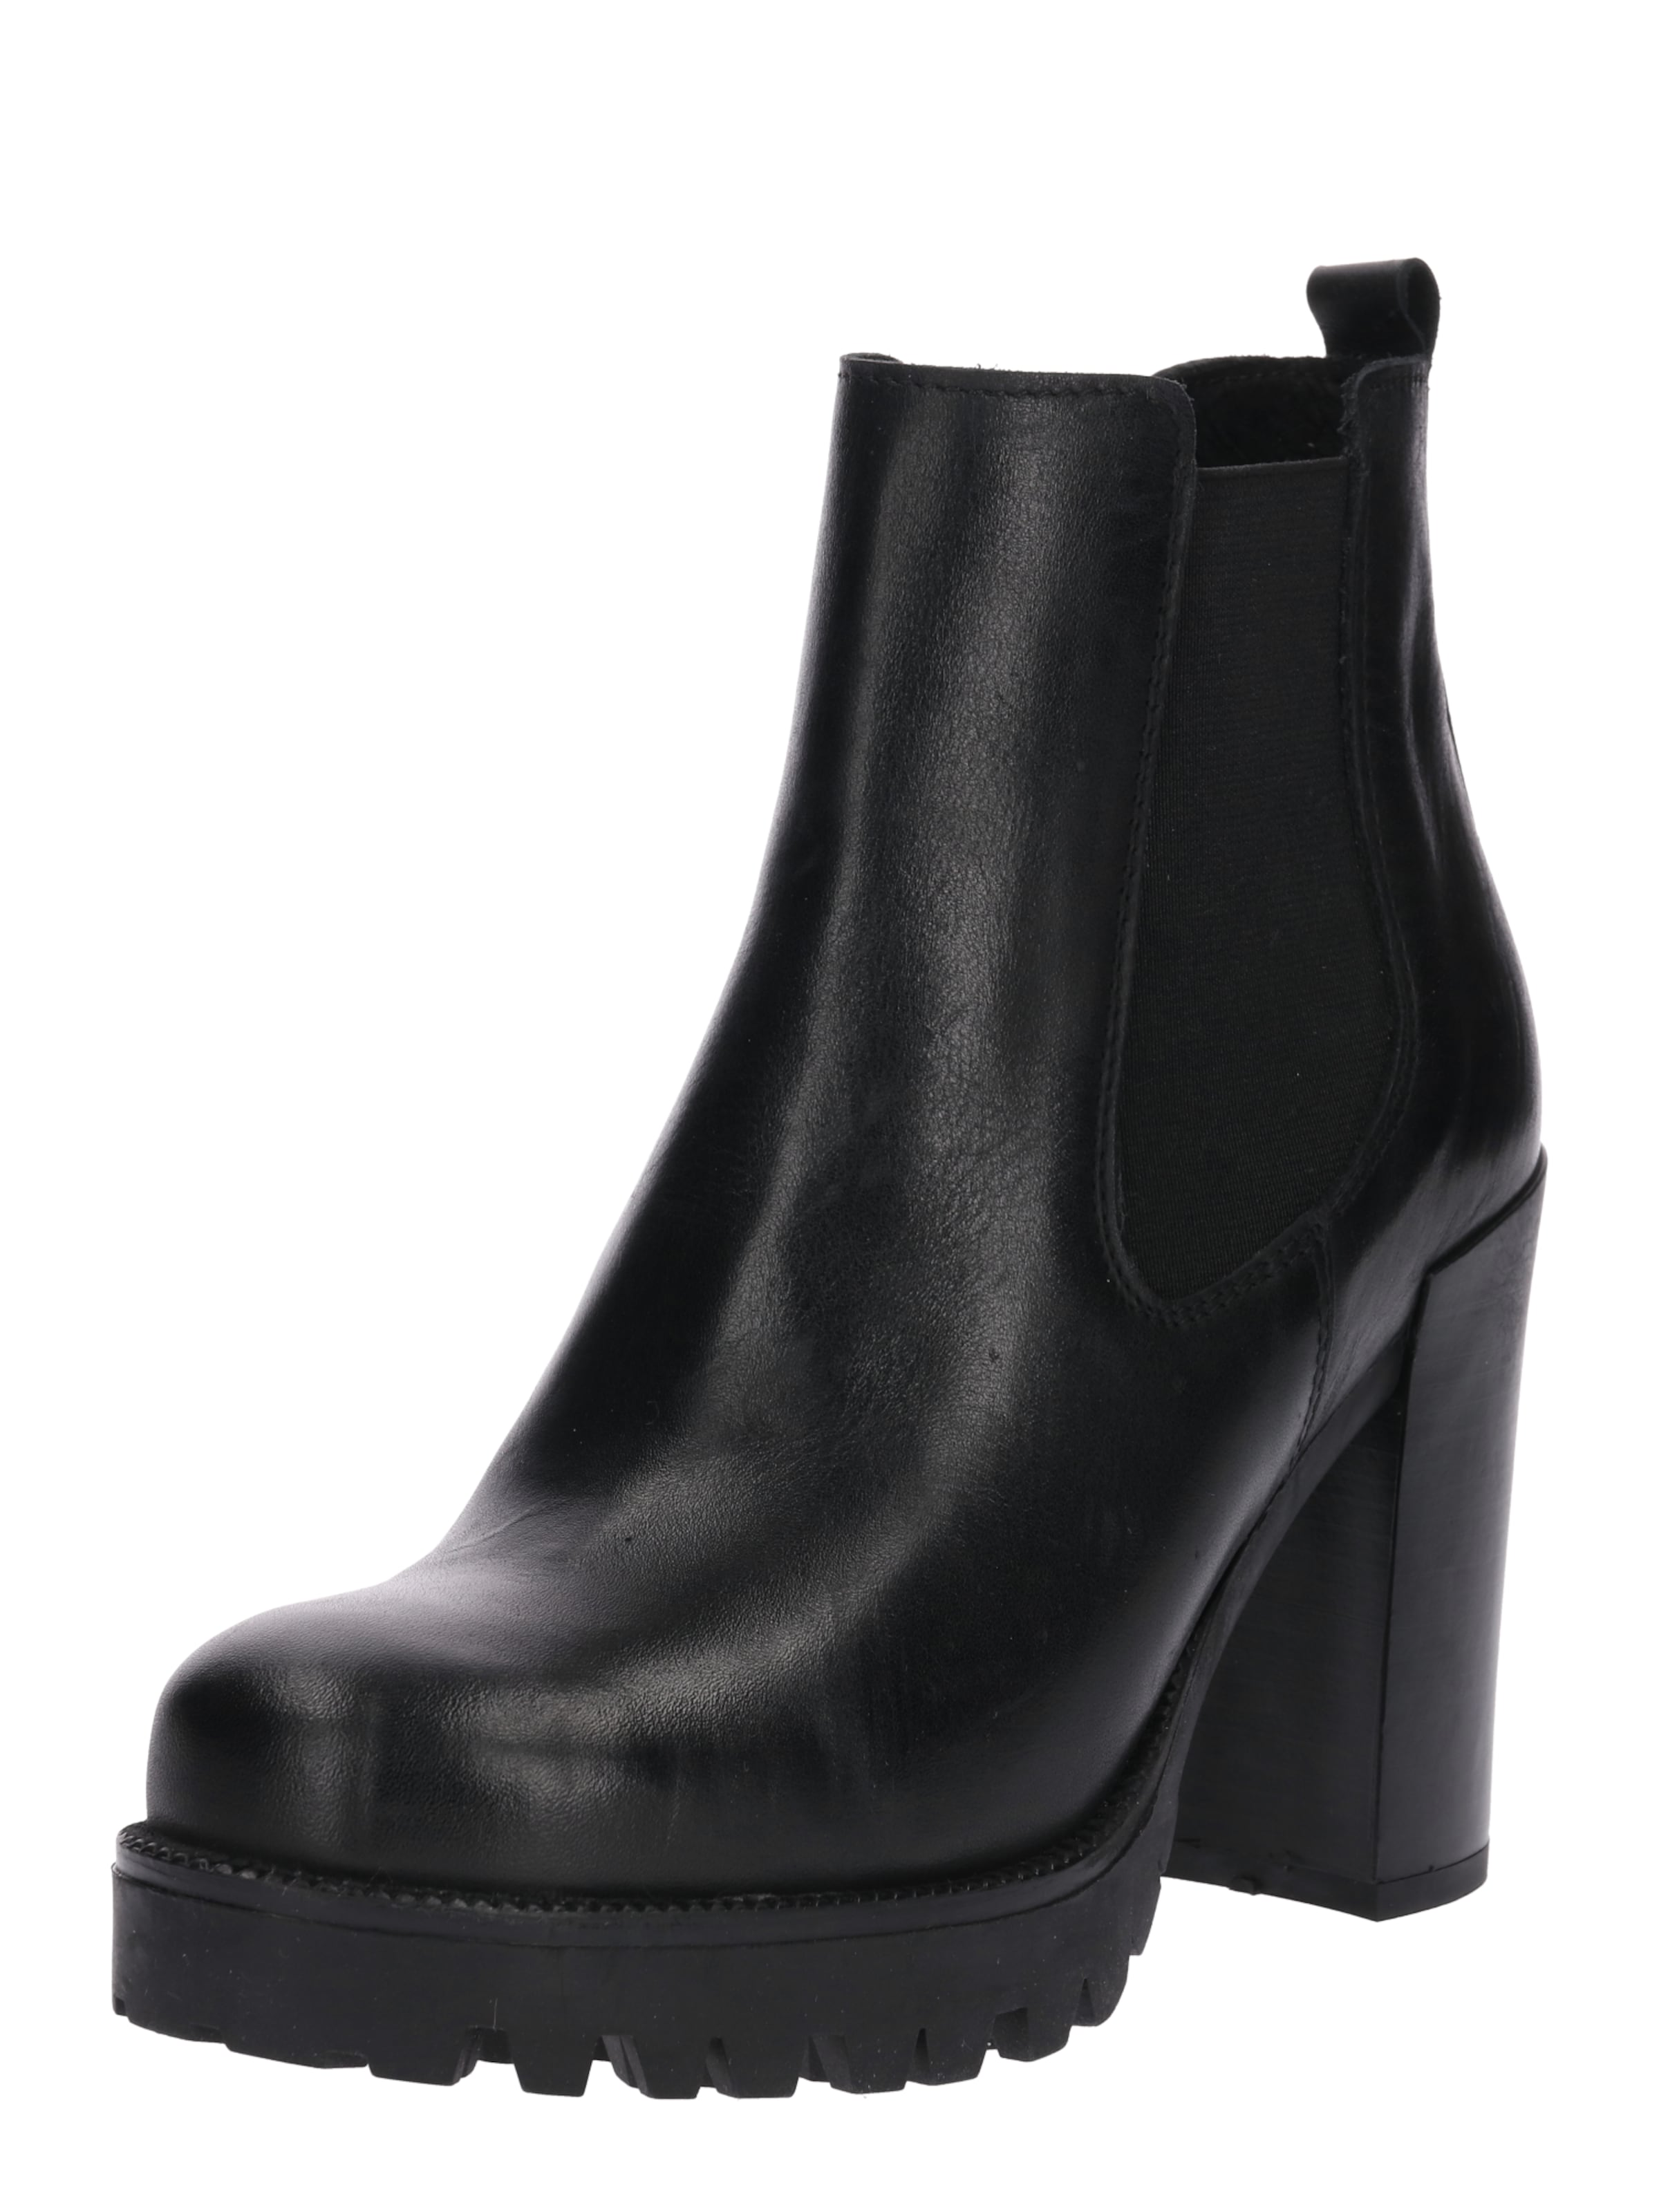 In Stiefeletten About You 'zehra' Schwarz OPwk8n0